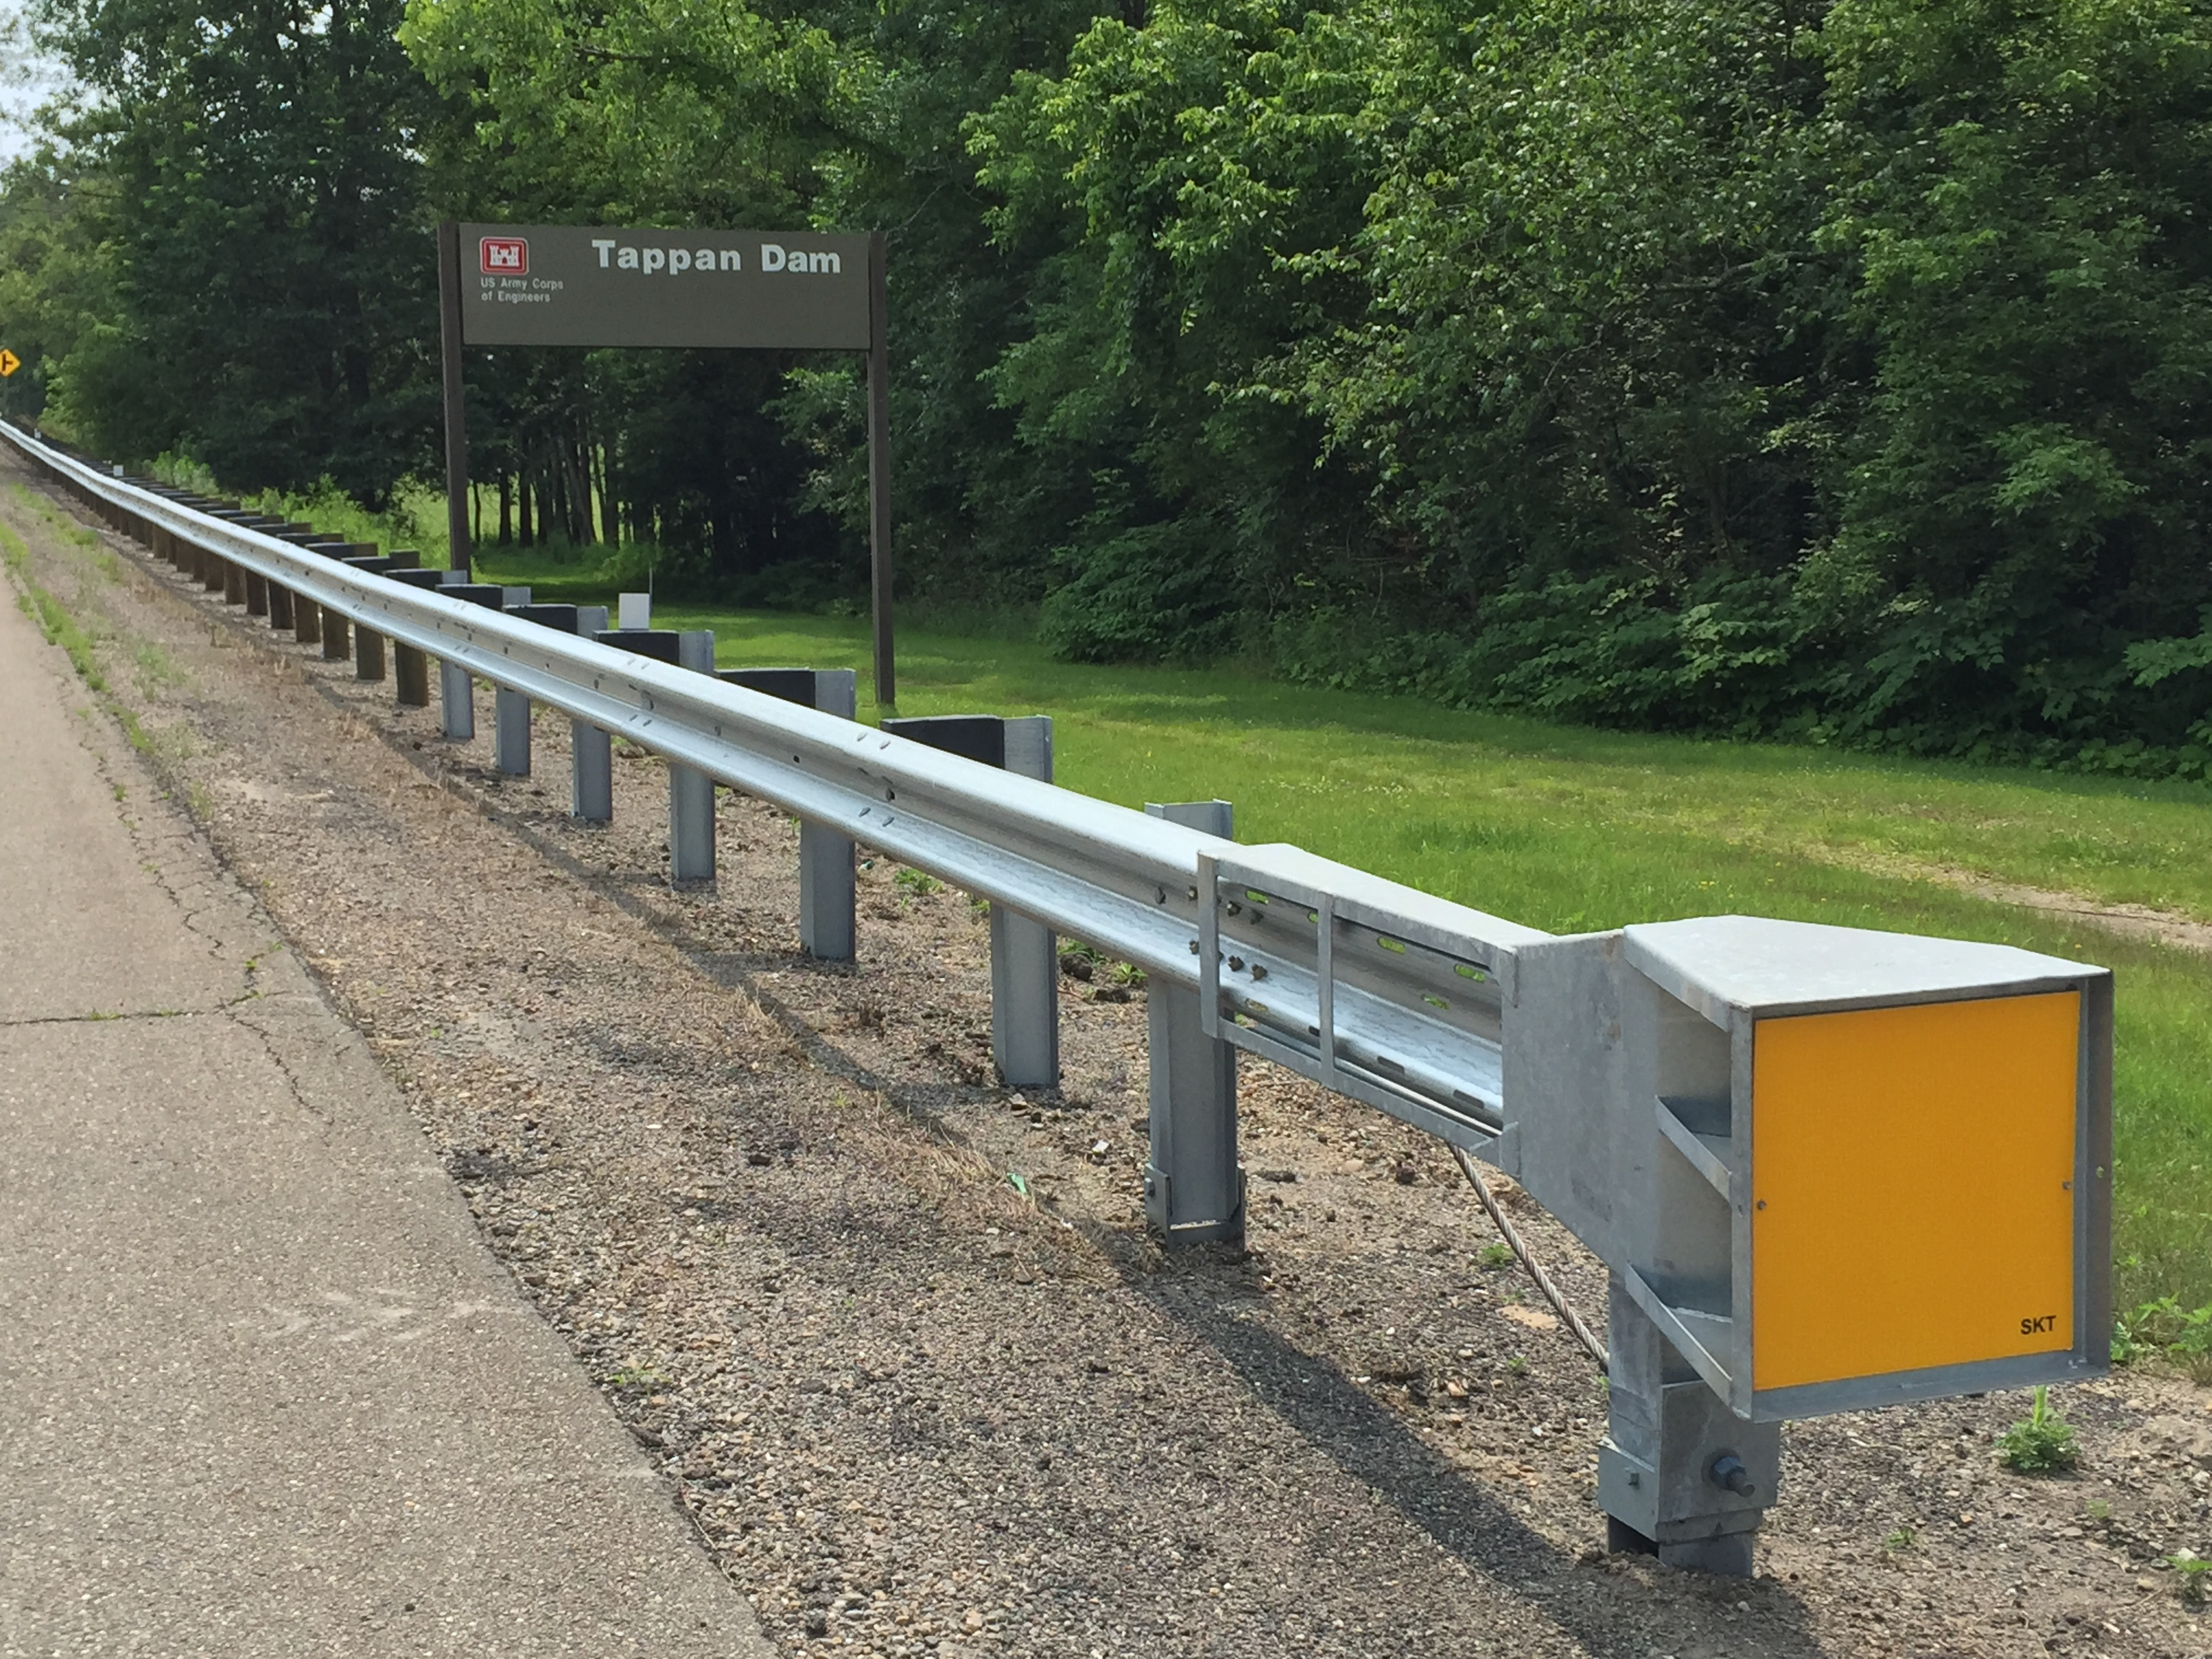 MGS Terminals (Midwest Guardrail System with 31